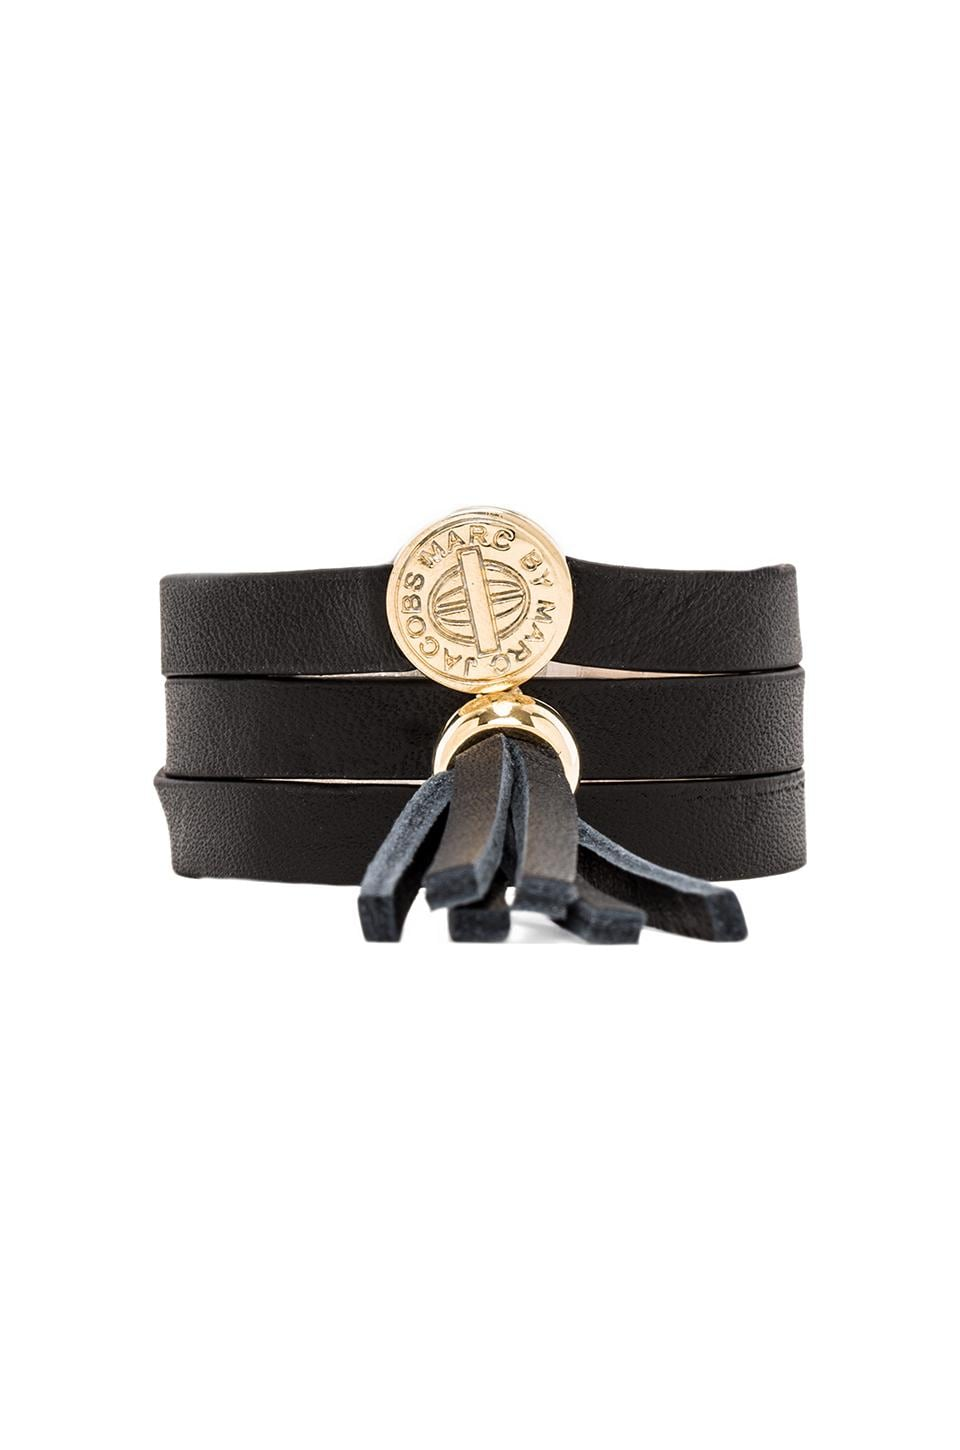 Marc by Marc Jacobs Triple Wrap Leather Bracelet in Black (Oro)